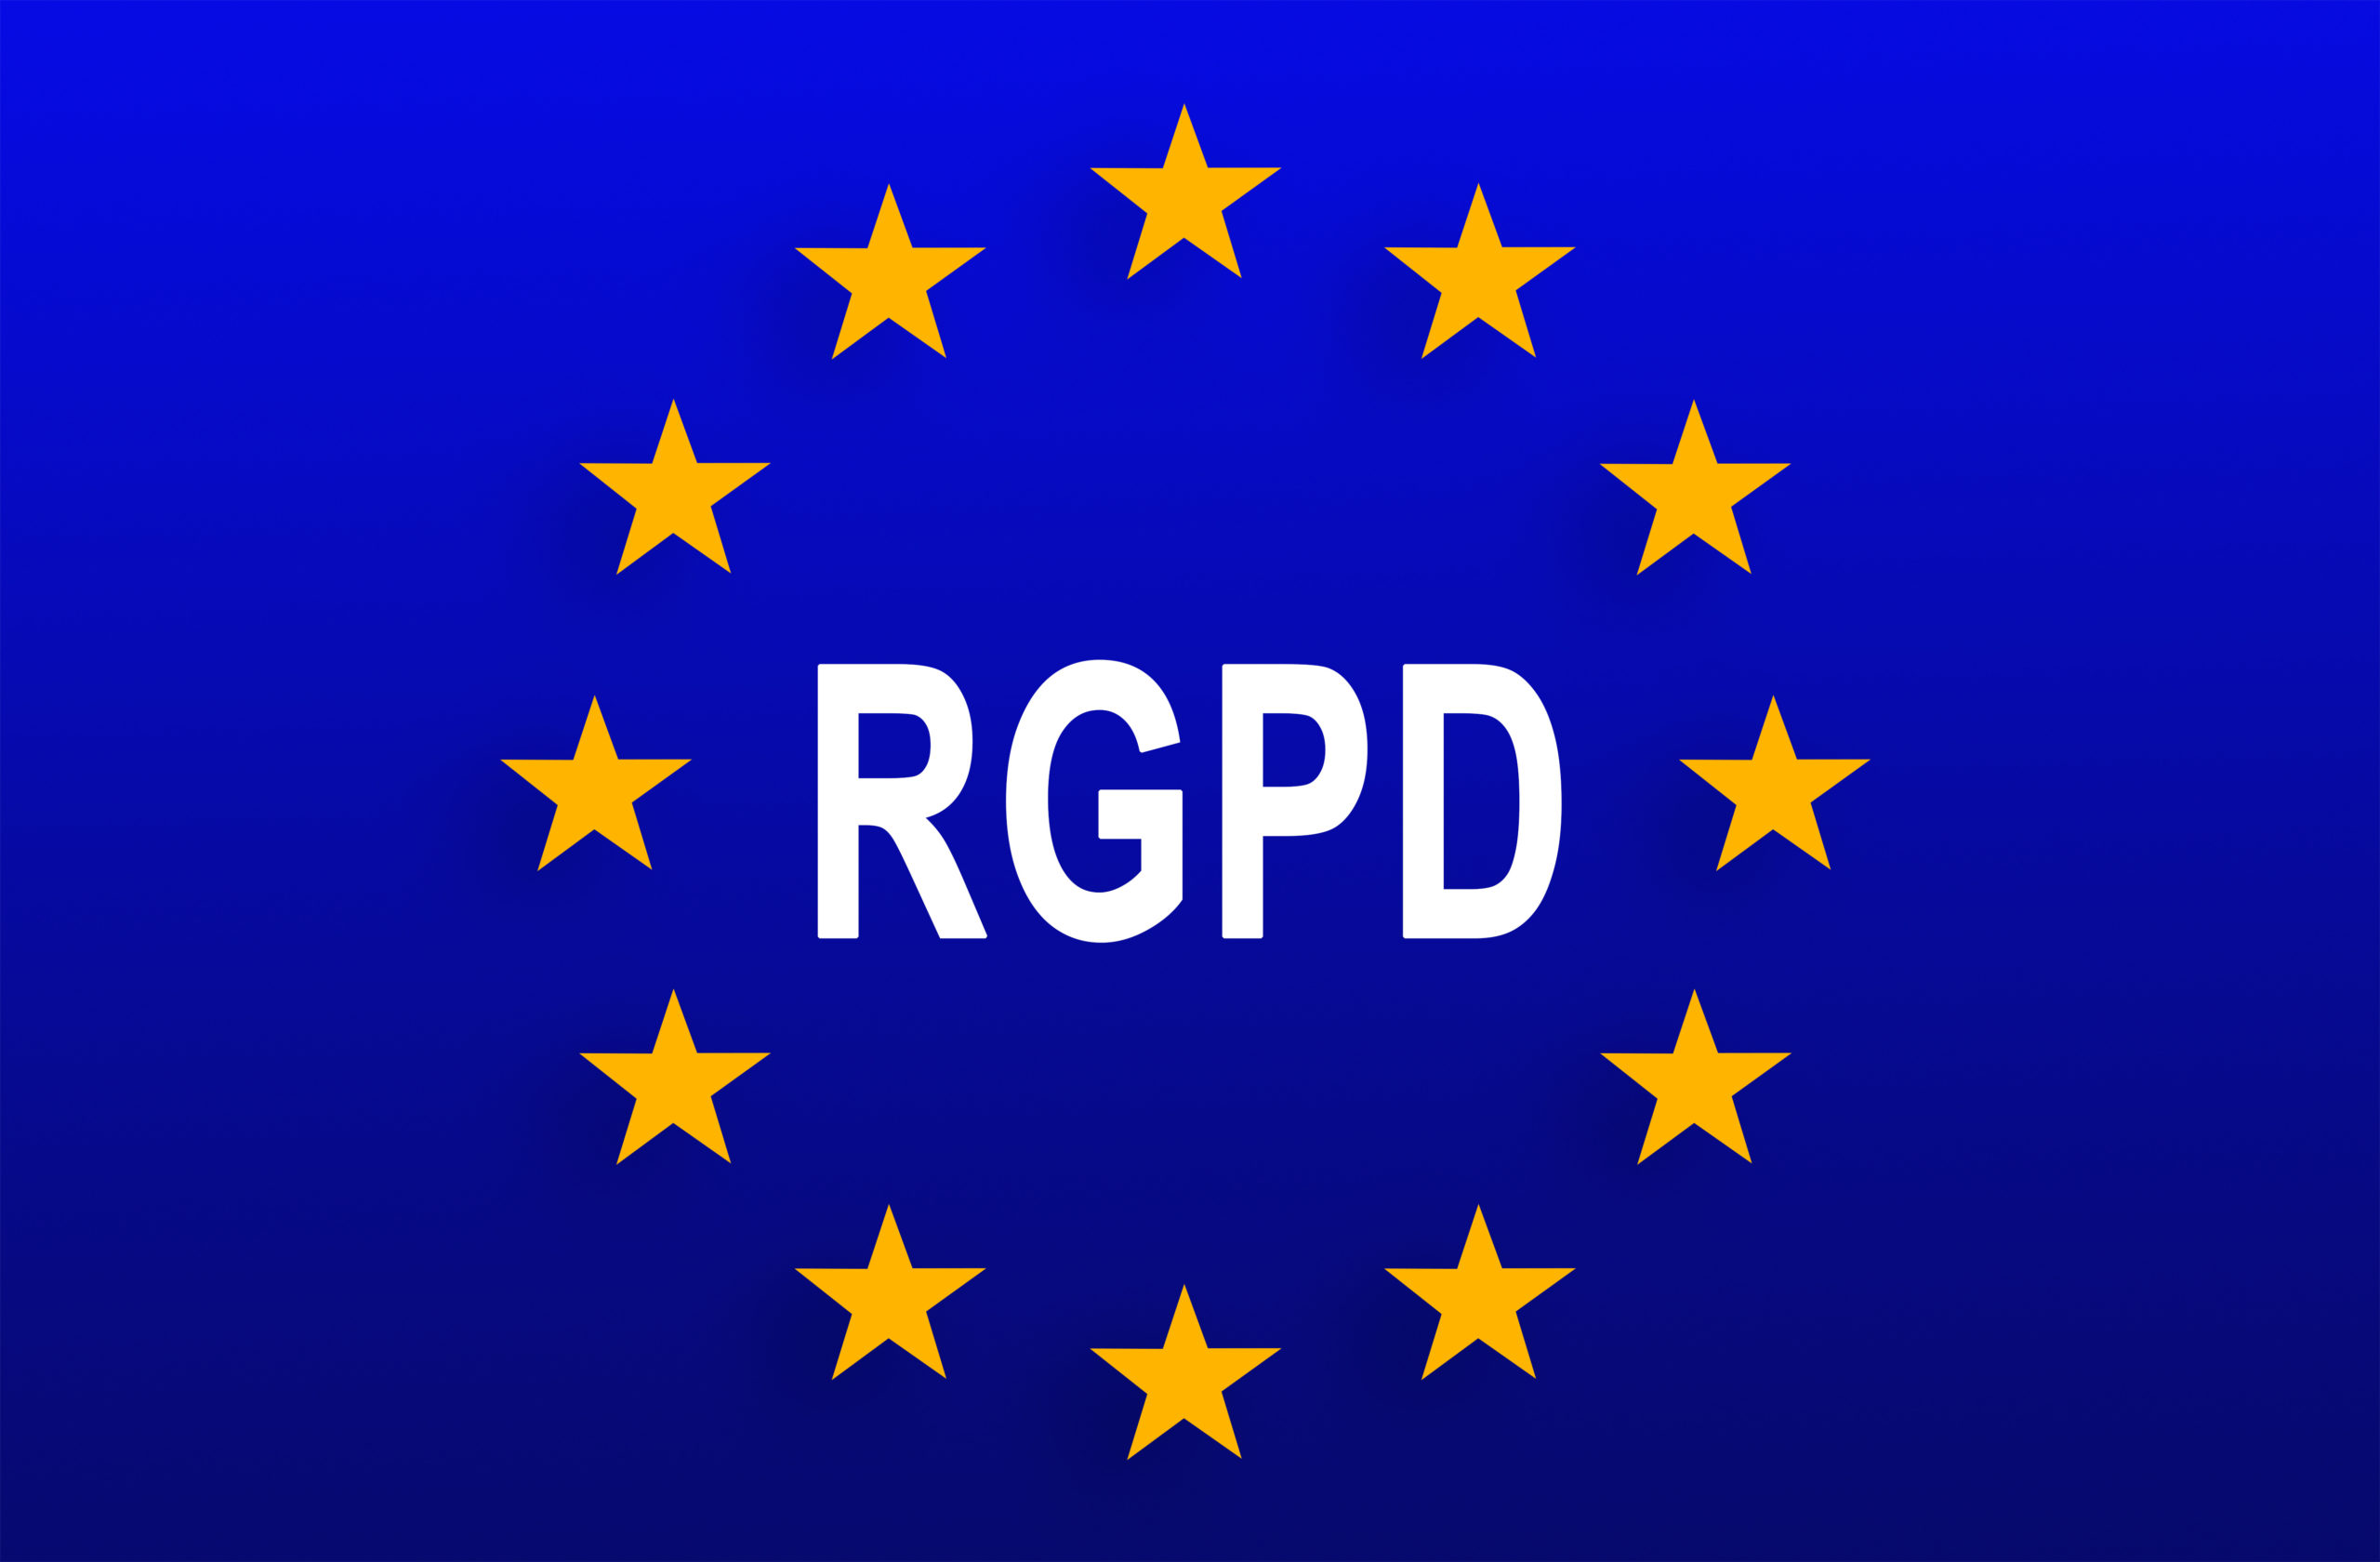 rgpd-reglement-protection-des-donnees-daqsan.jpeg